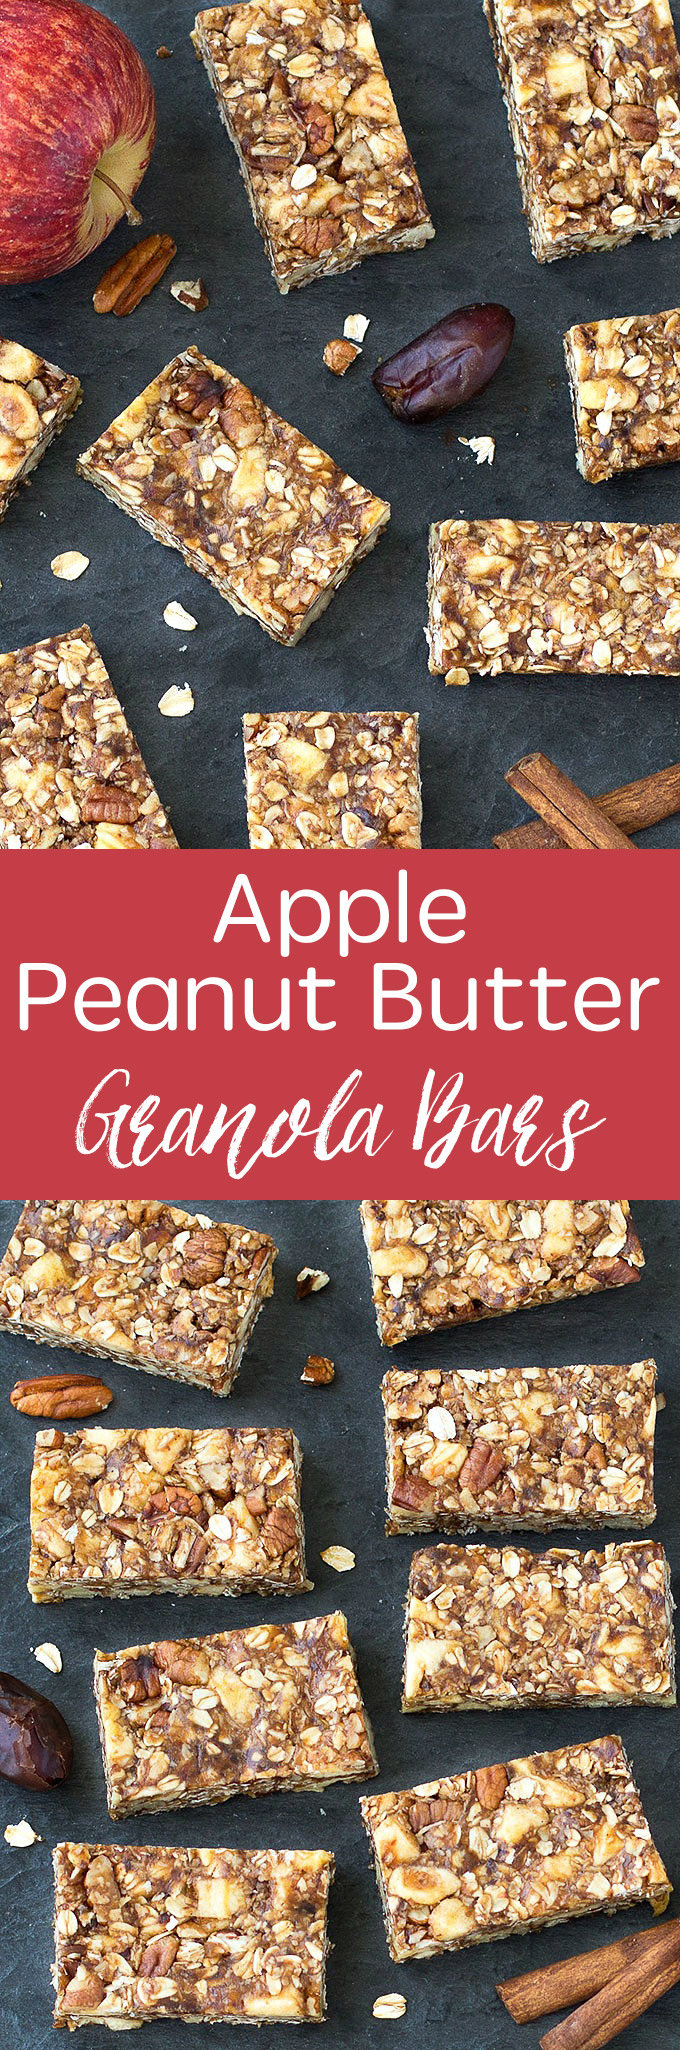 Simple, no-bake chewy, homemade Apple Peanut Butter Granola Bars! Perfect as a snack or even for breakfast! Vegan and gluten free options! #bars #apple #snack #healthy #healthyrecipes